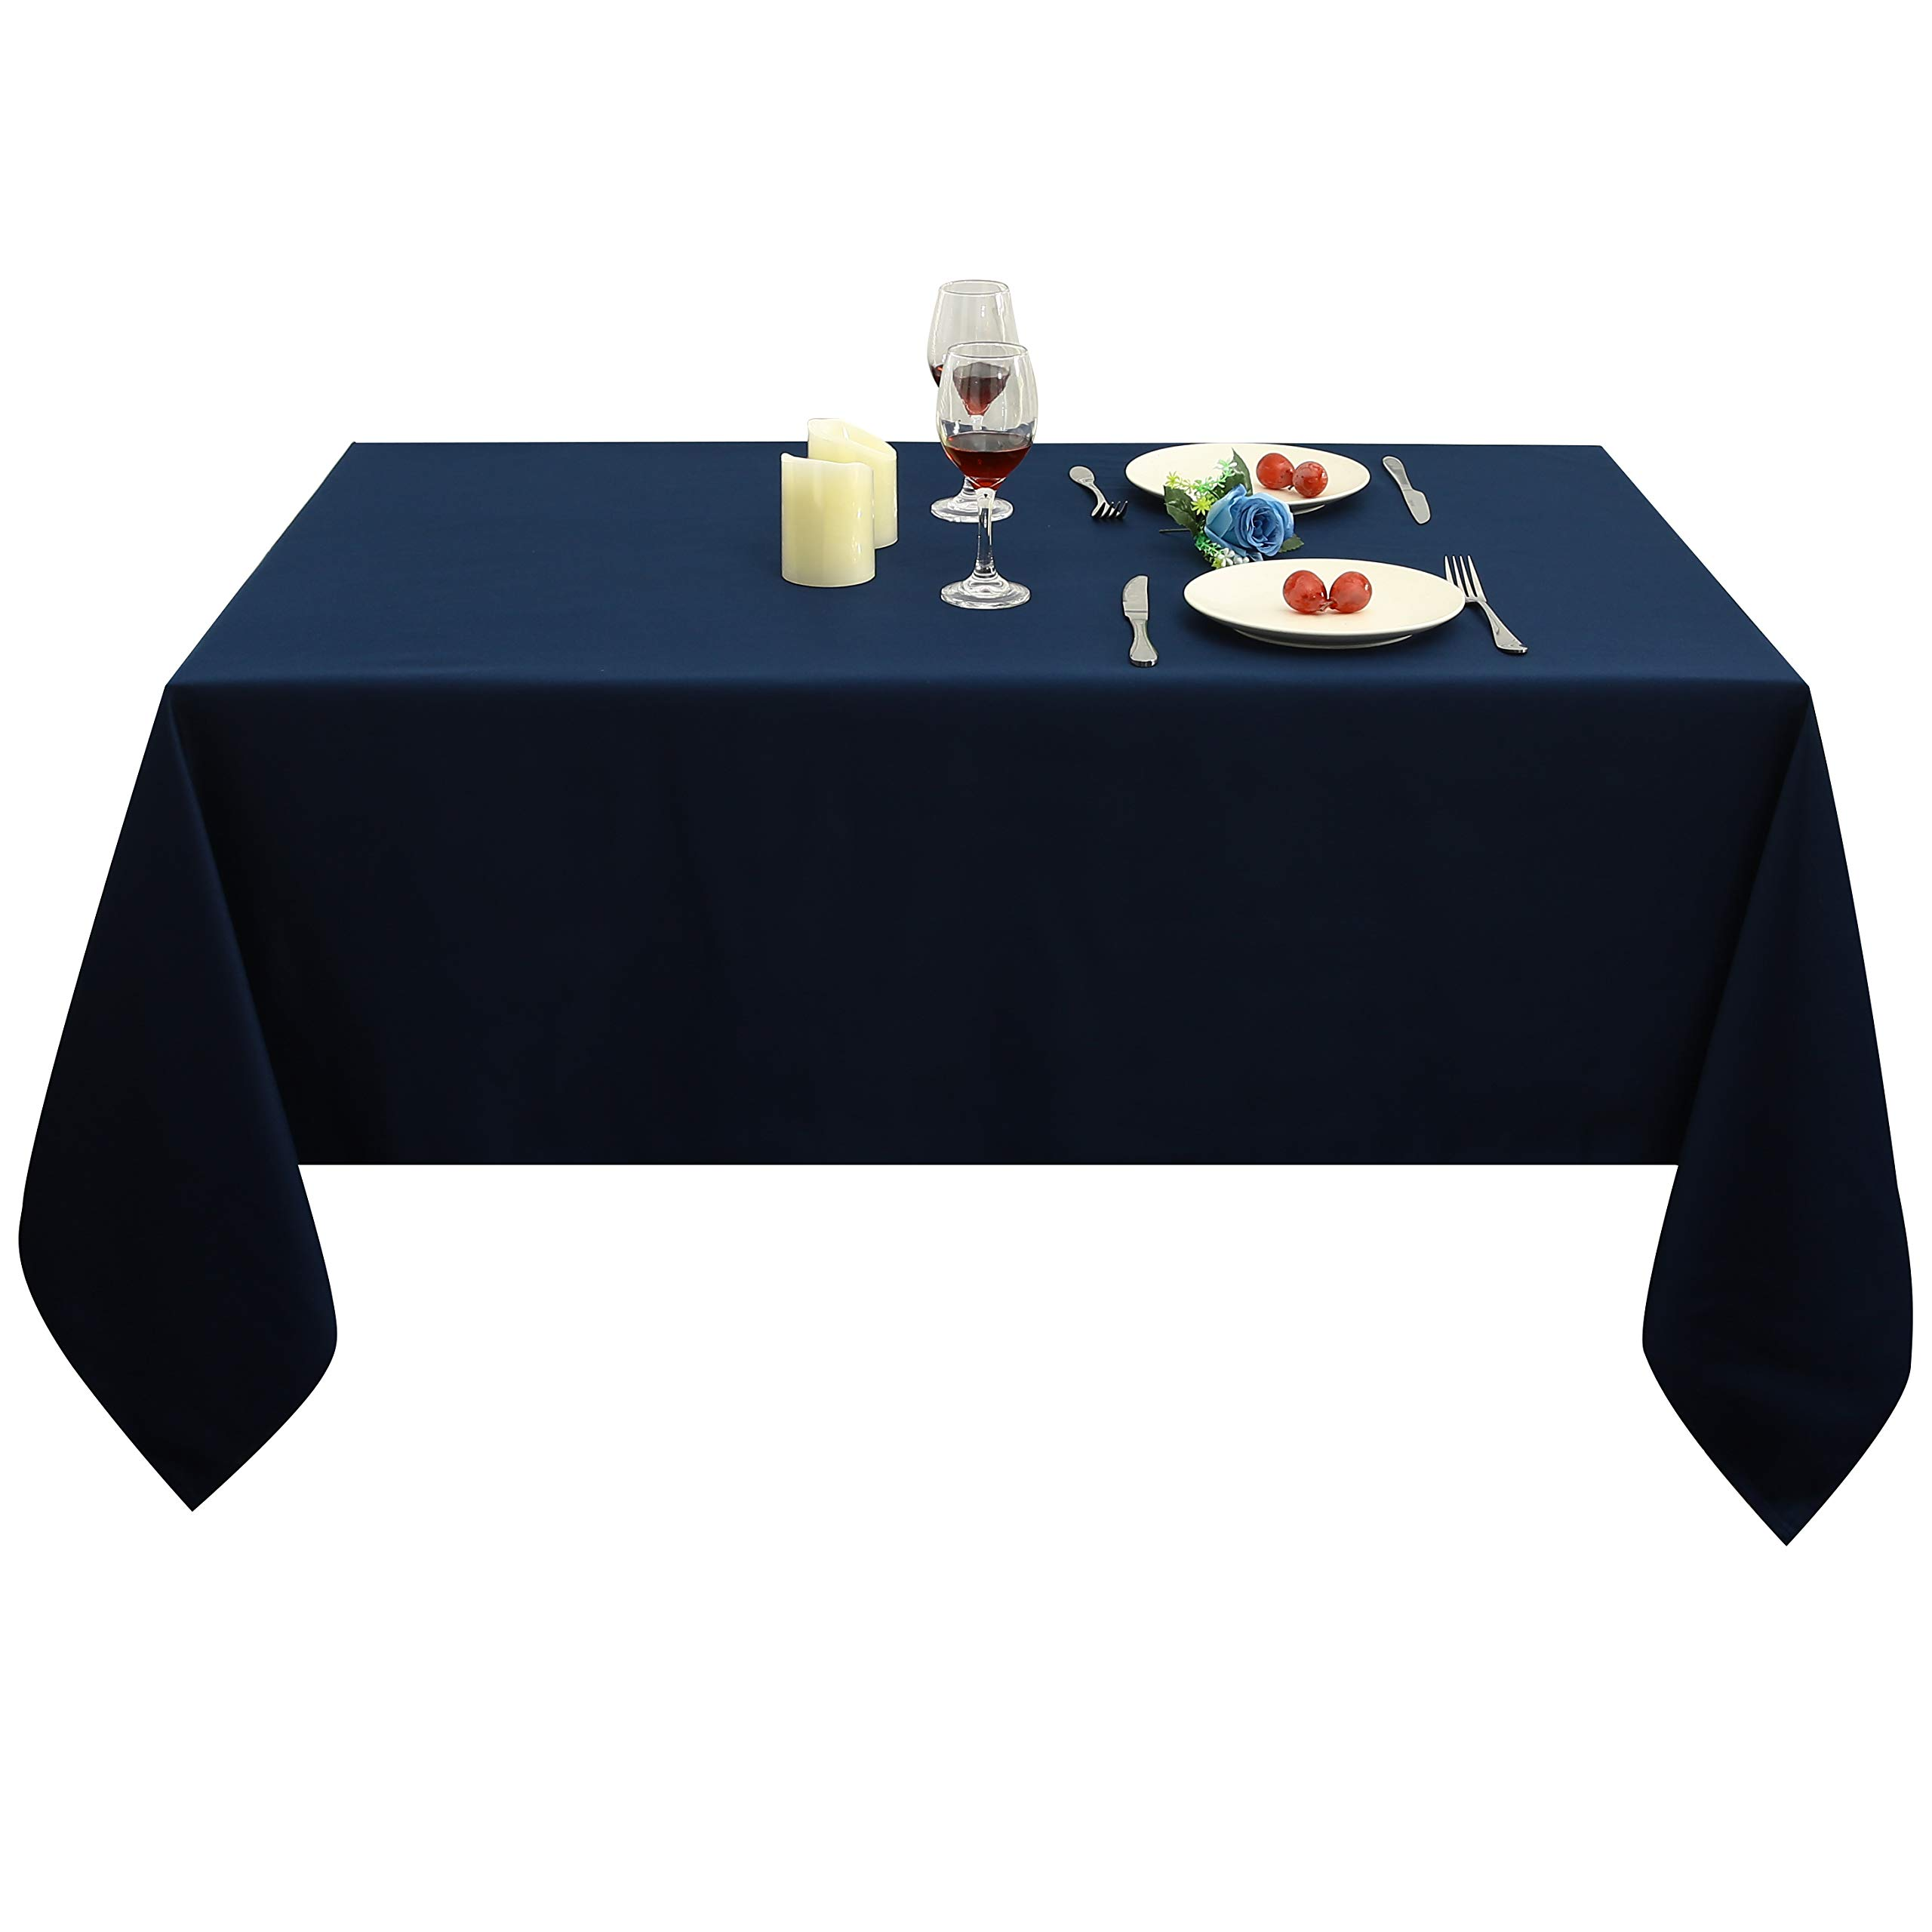 Obstal Rectangle Table Cloth, Oil-Proof Spill-Proof and Water Resistance Microfiber Tablecloth, Decorative Fabric Table Cover for Outdoor and Indoor Use (Navy Blue, 60 x 84 Inch) by Obstal (Image #3)